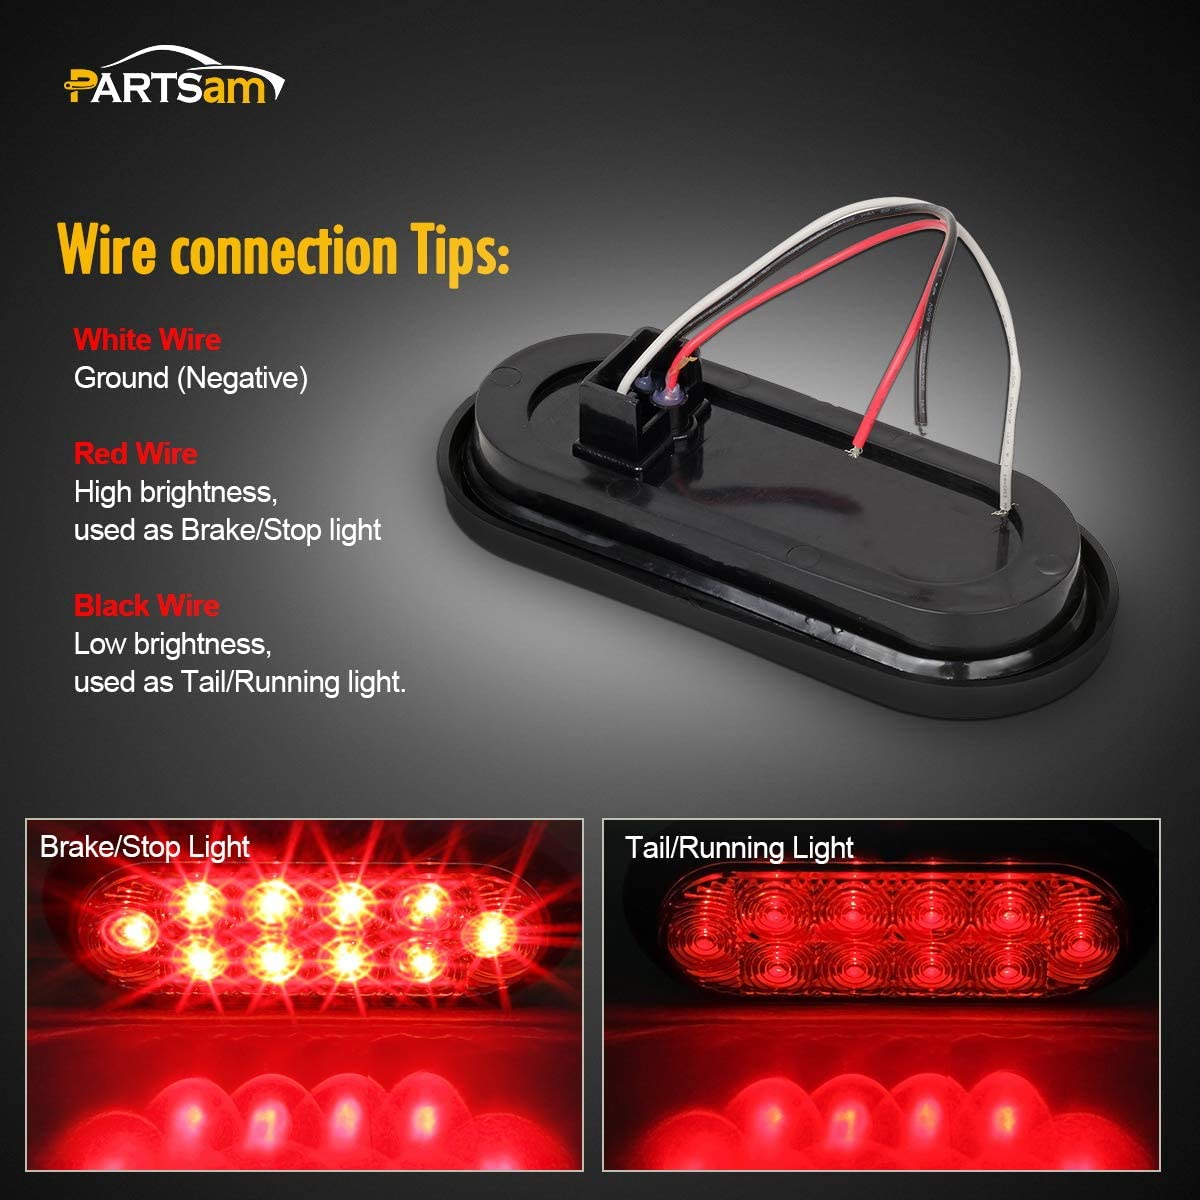 Partsam Trailer Light Wiring Diagram from images-na.ssl-images-amazon.com